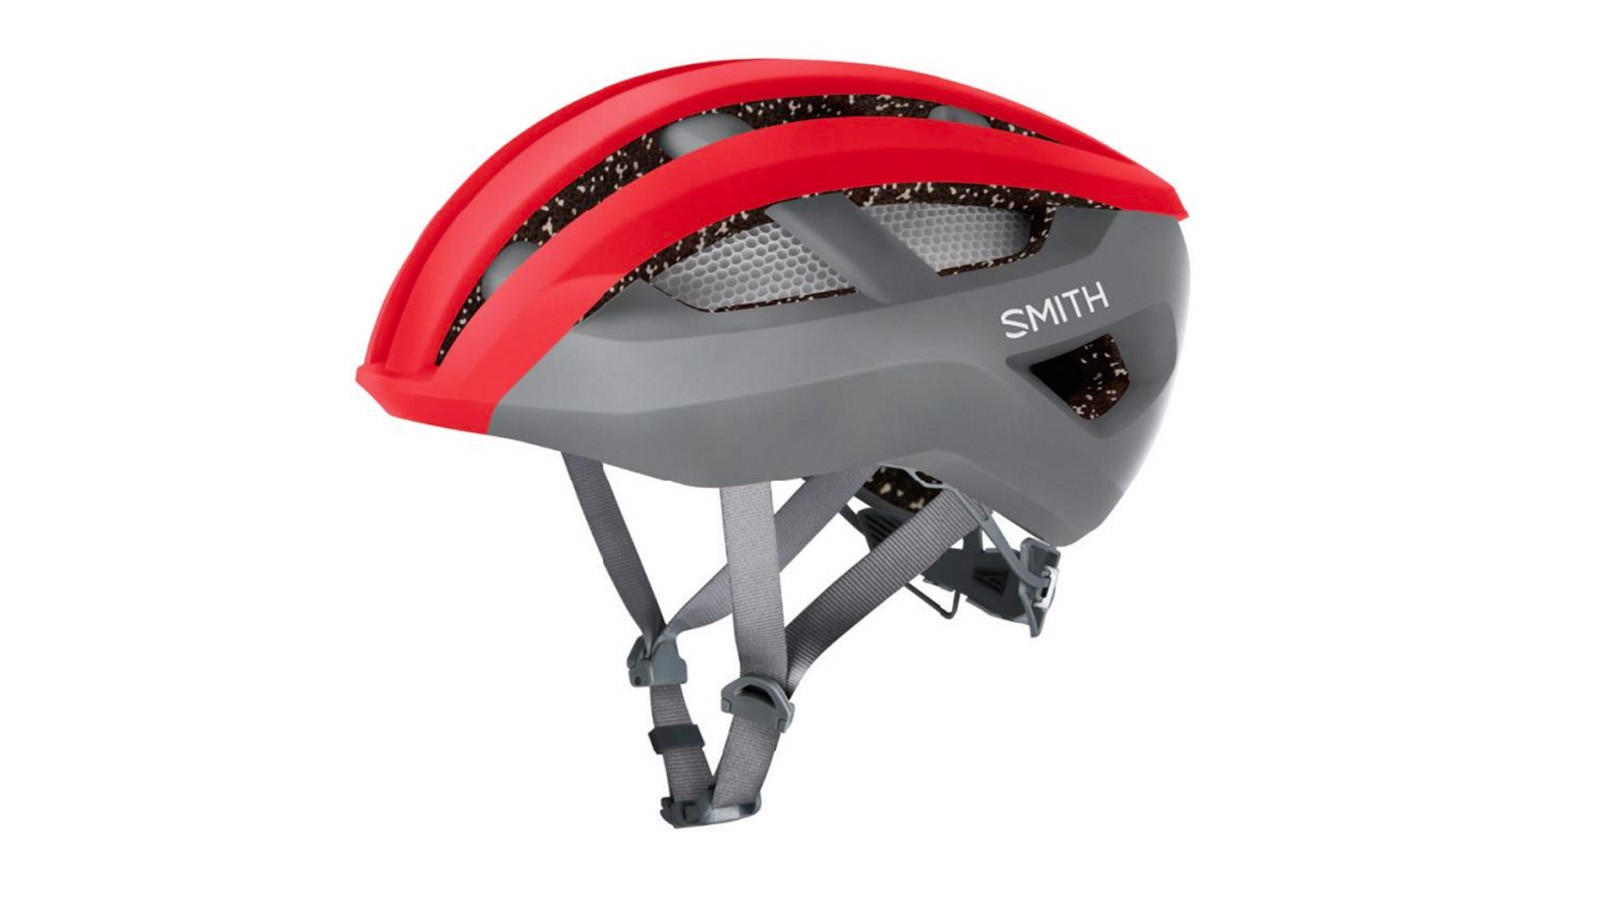 The Network is Smith's latest road lid